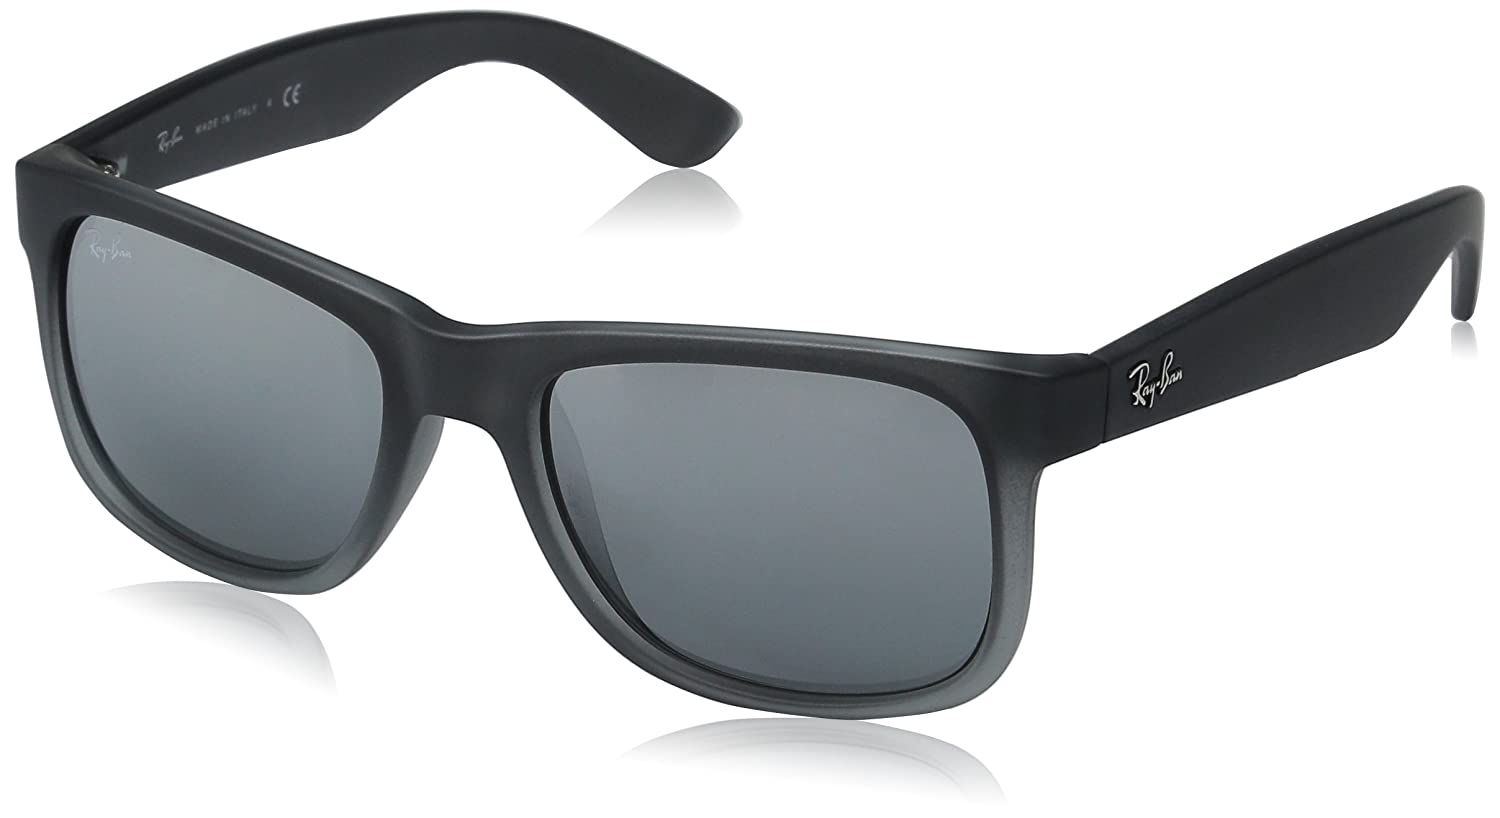 46c70f00a61 Ray-Ban 0RB4165 Rectangular Sunglasses